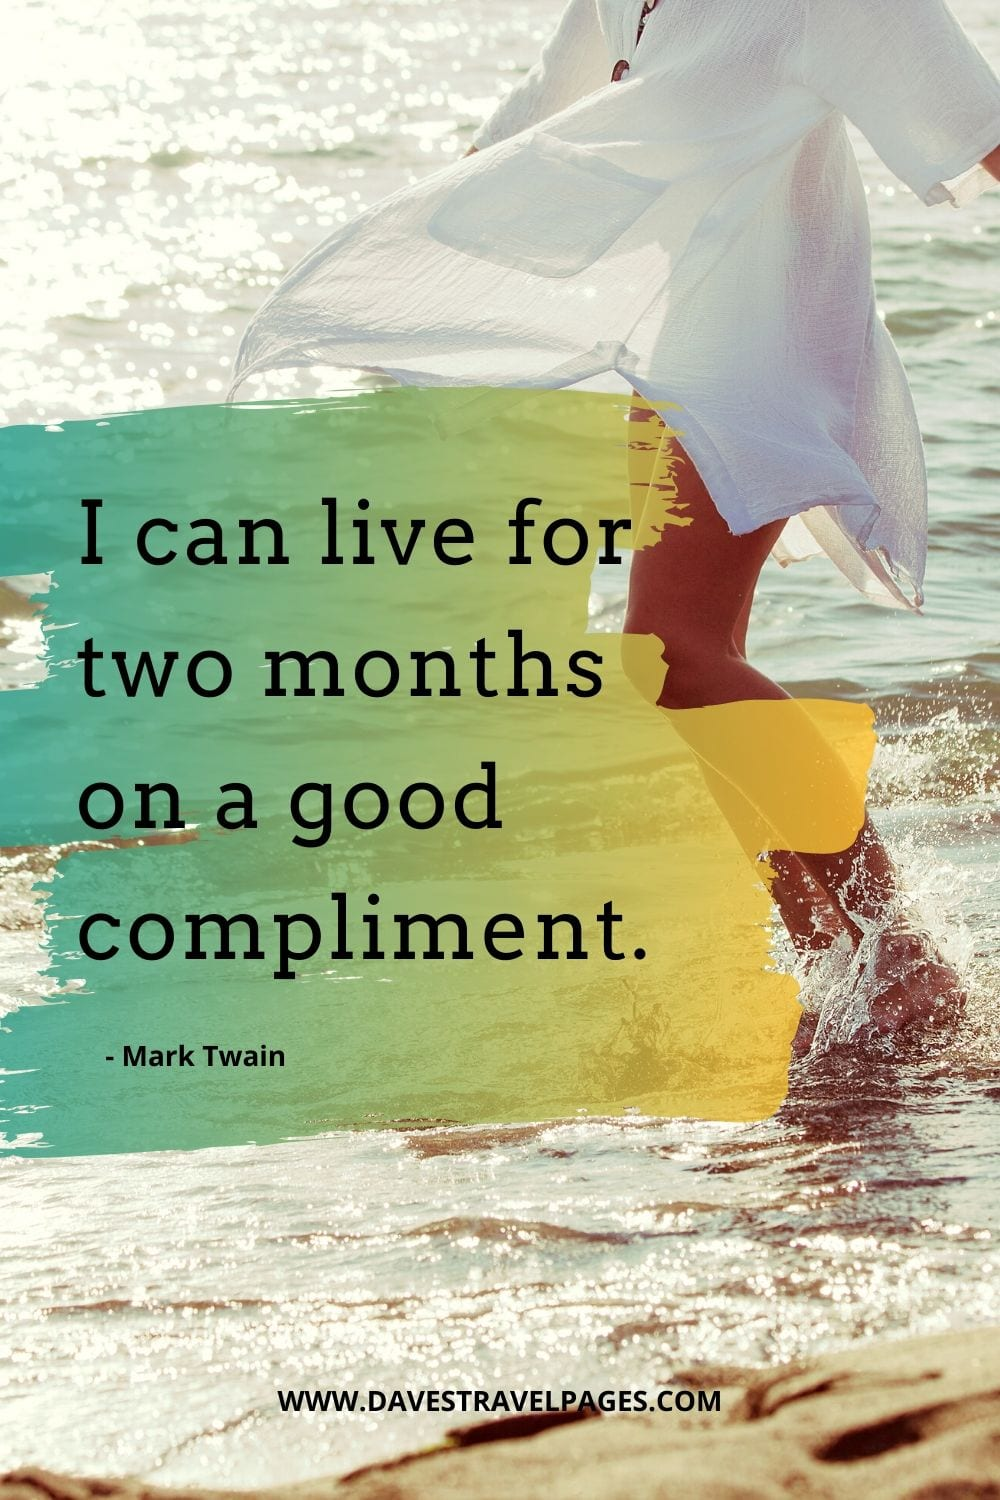 Funny Mark Twain Quote - I can live for two months on a good compliment.